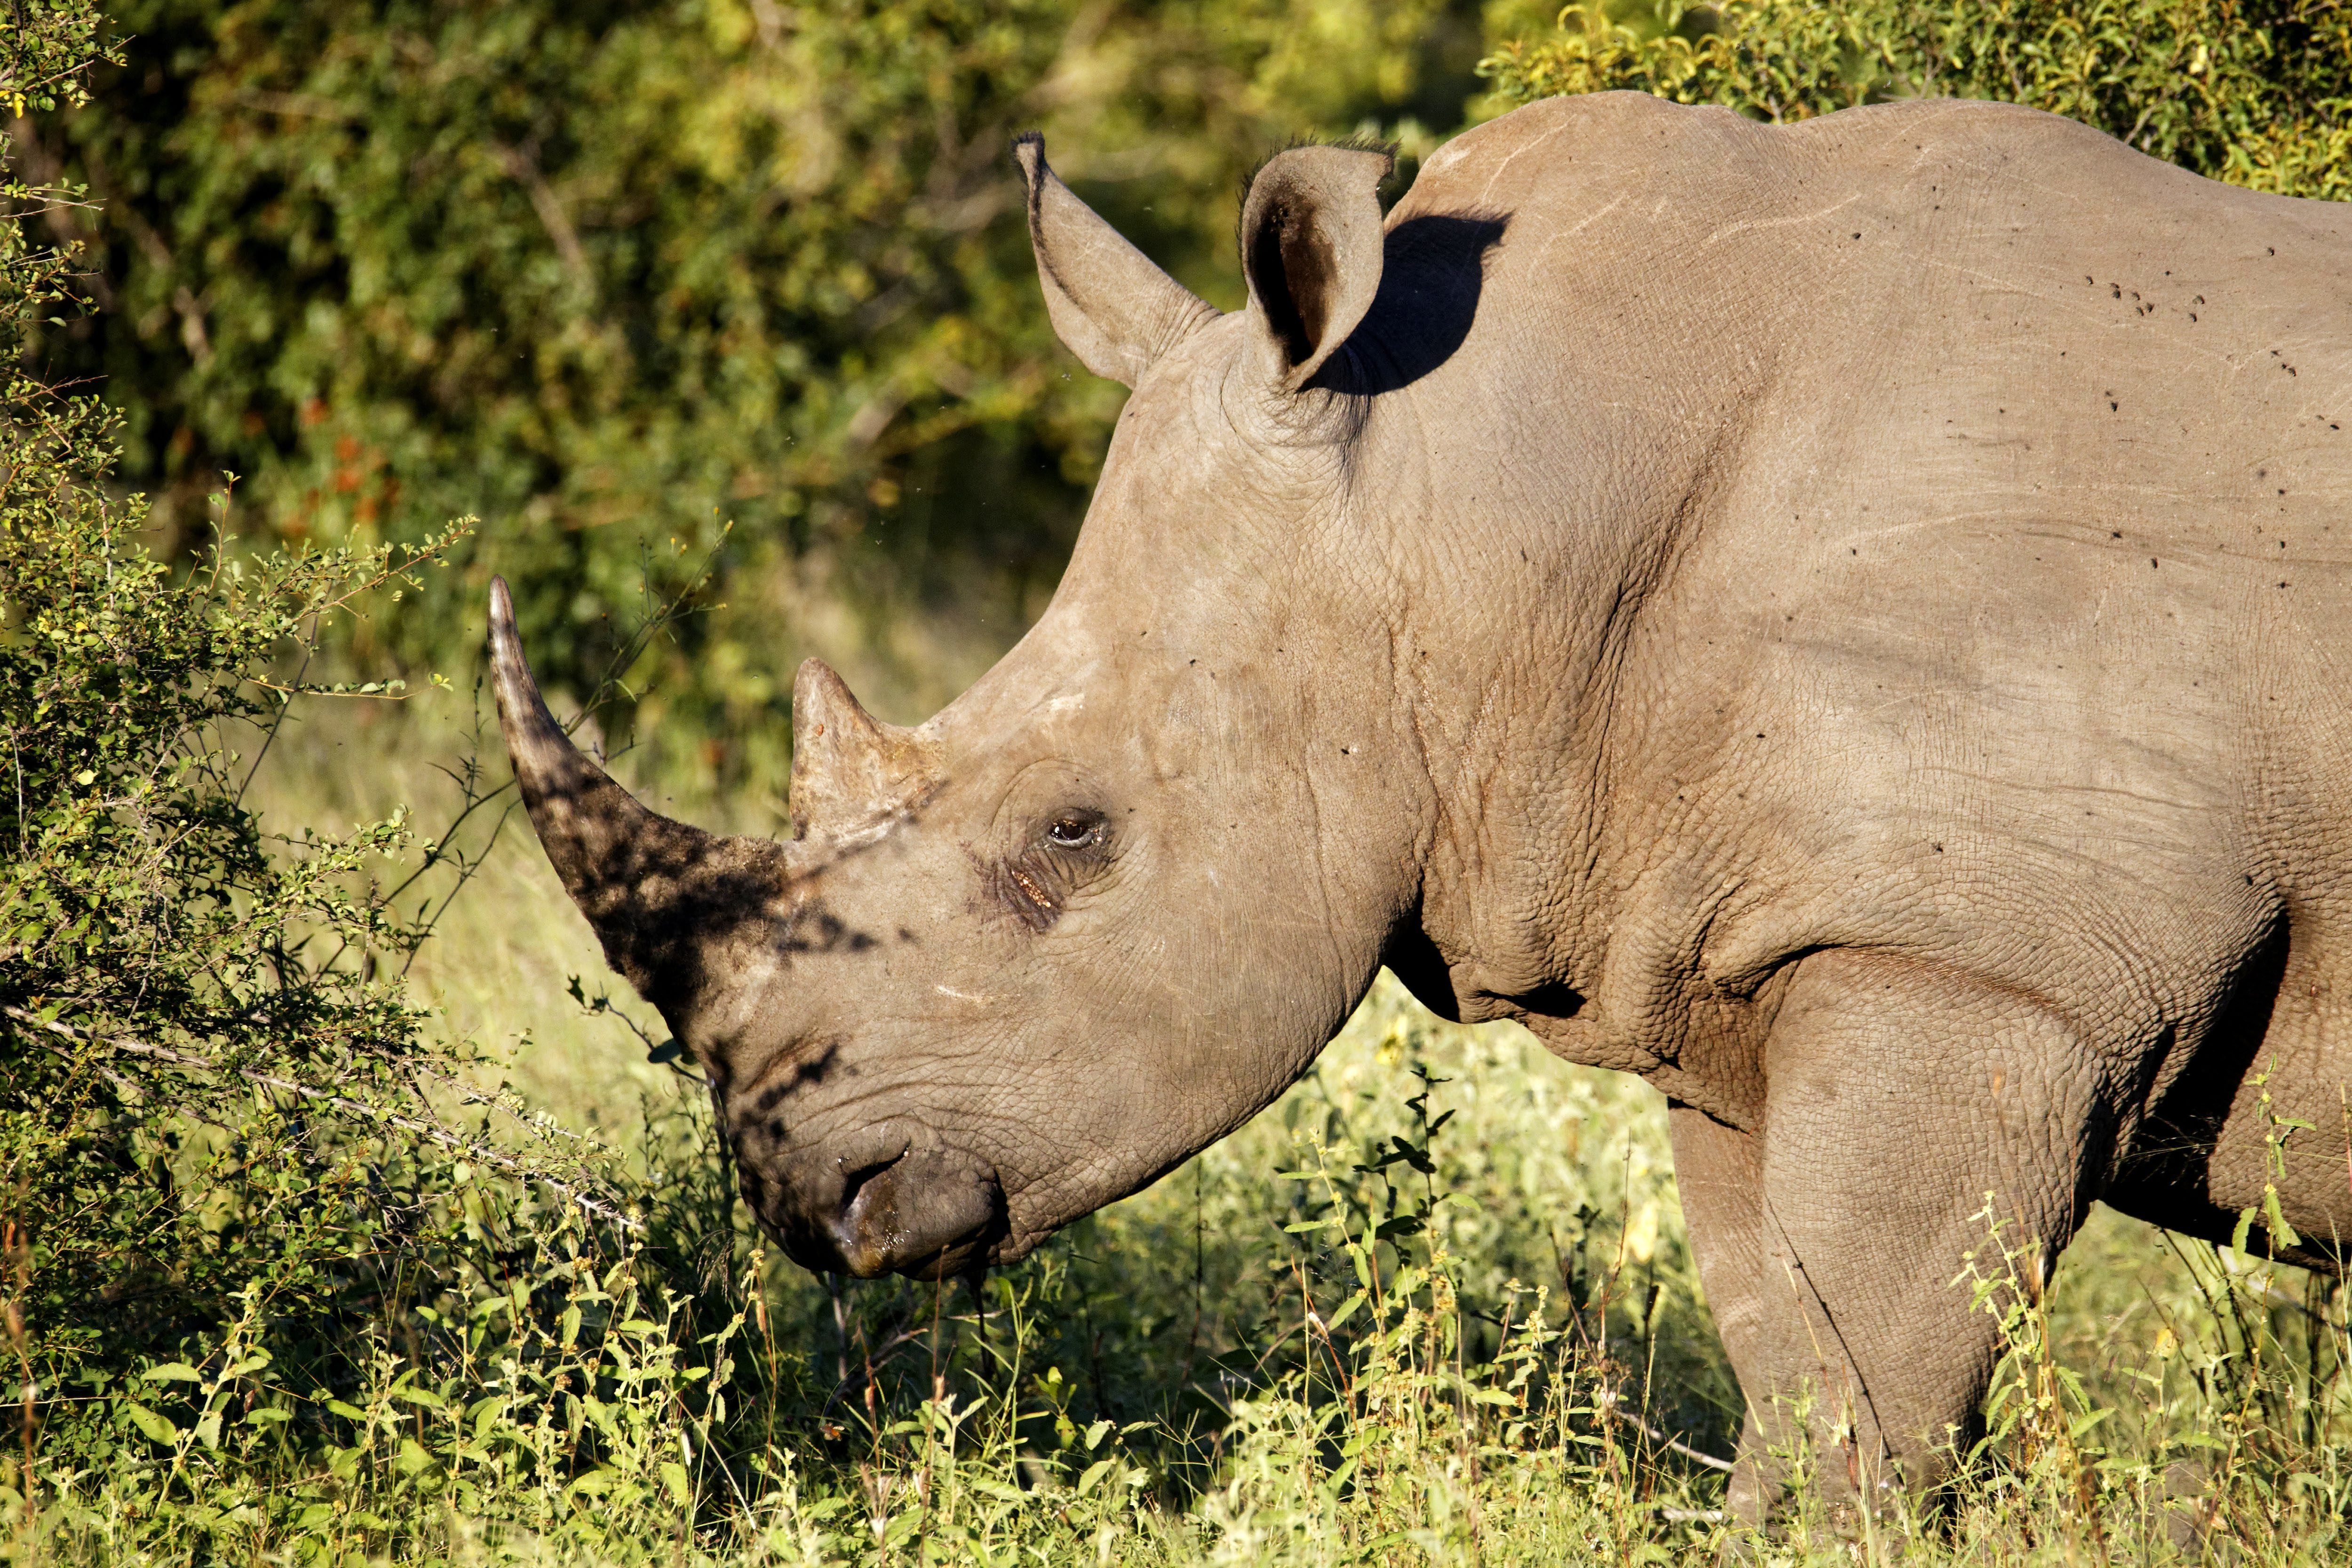 A rhino in Kruger National Park. Credit: PA